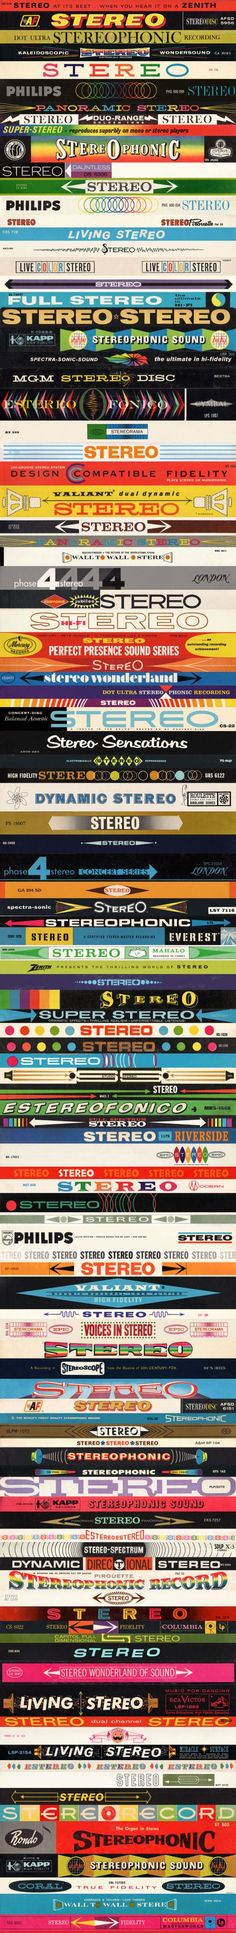 Stereo snipes from records–awesome retro design in the its original form.